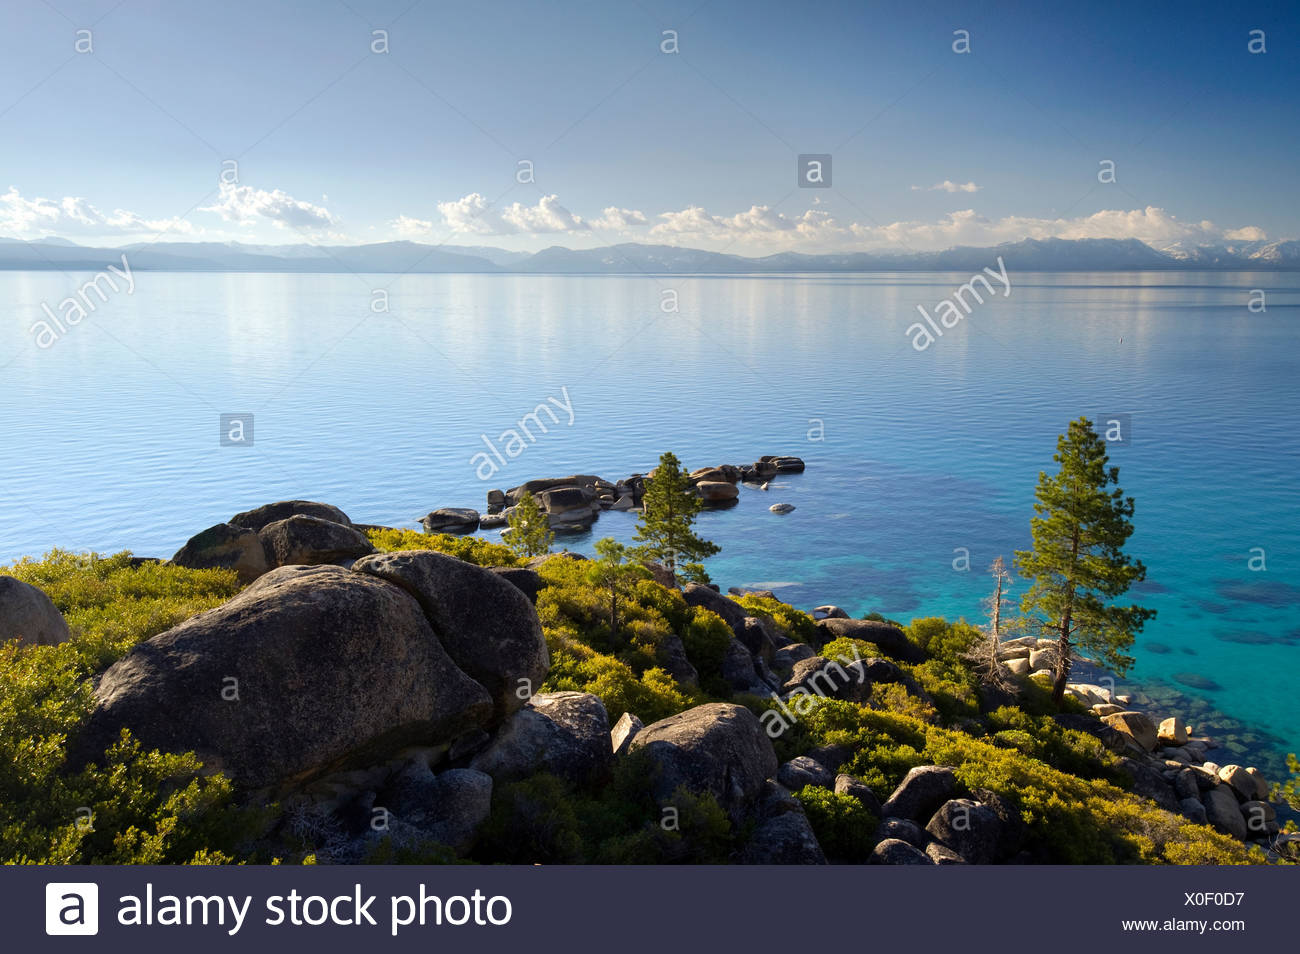 A view of Lake Tahoe from the classic Sand Harbor Overlook on the east shore of the lake, Nevada. - Stock Image